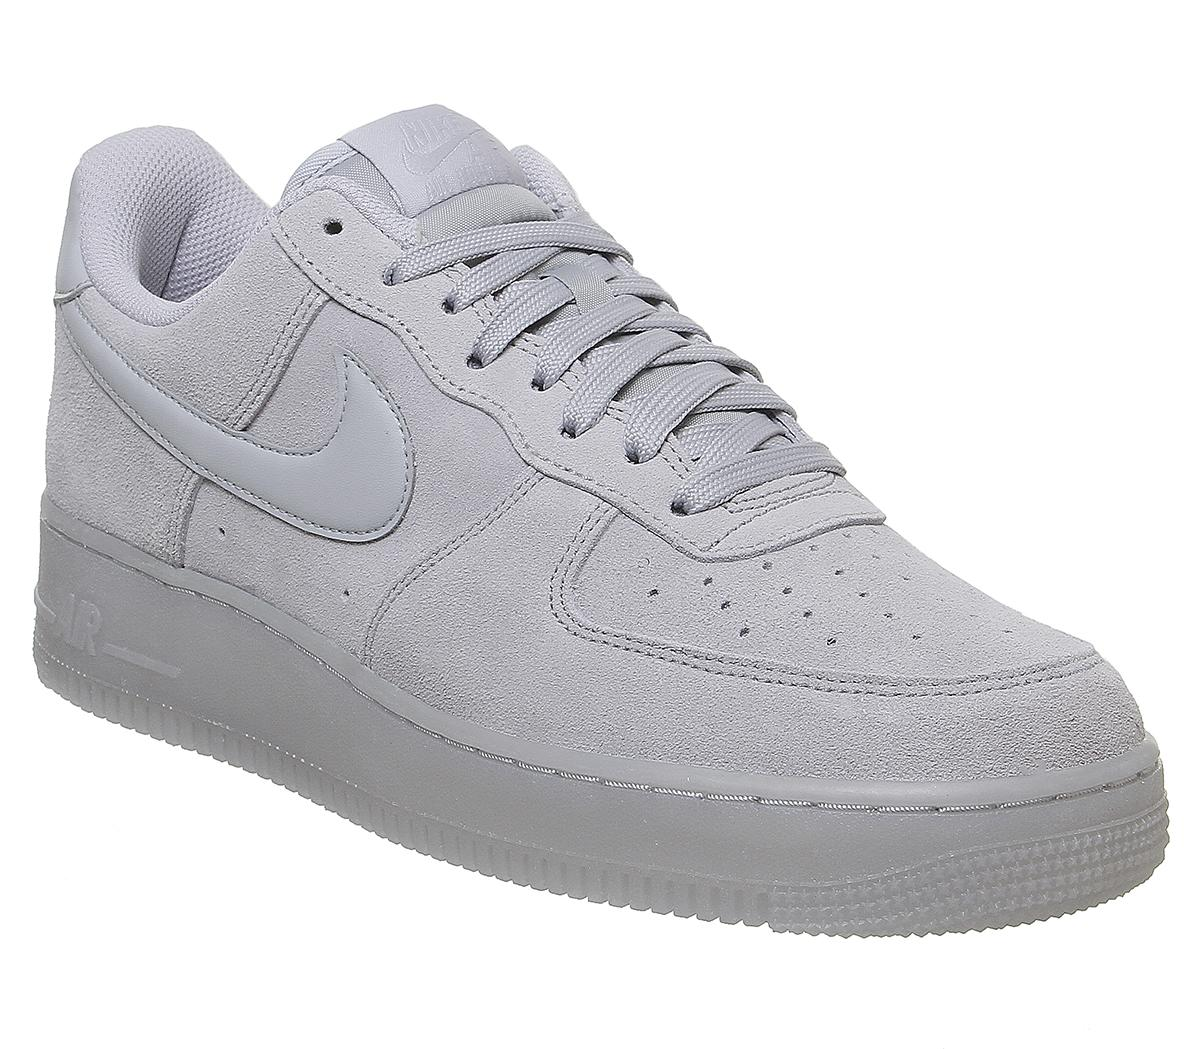 Oso polar sin Complicado  Nike Air Force 1 Lv8 Trainers Wolf Grey Wolf Grey - His trainers